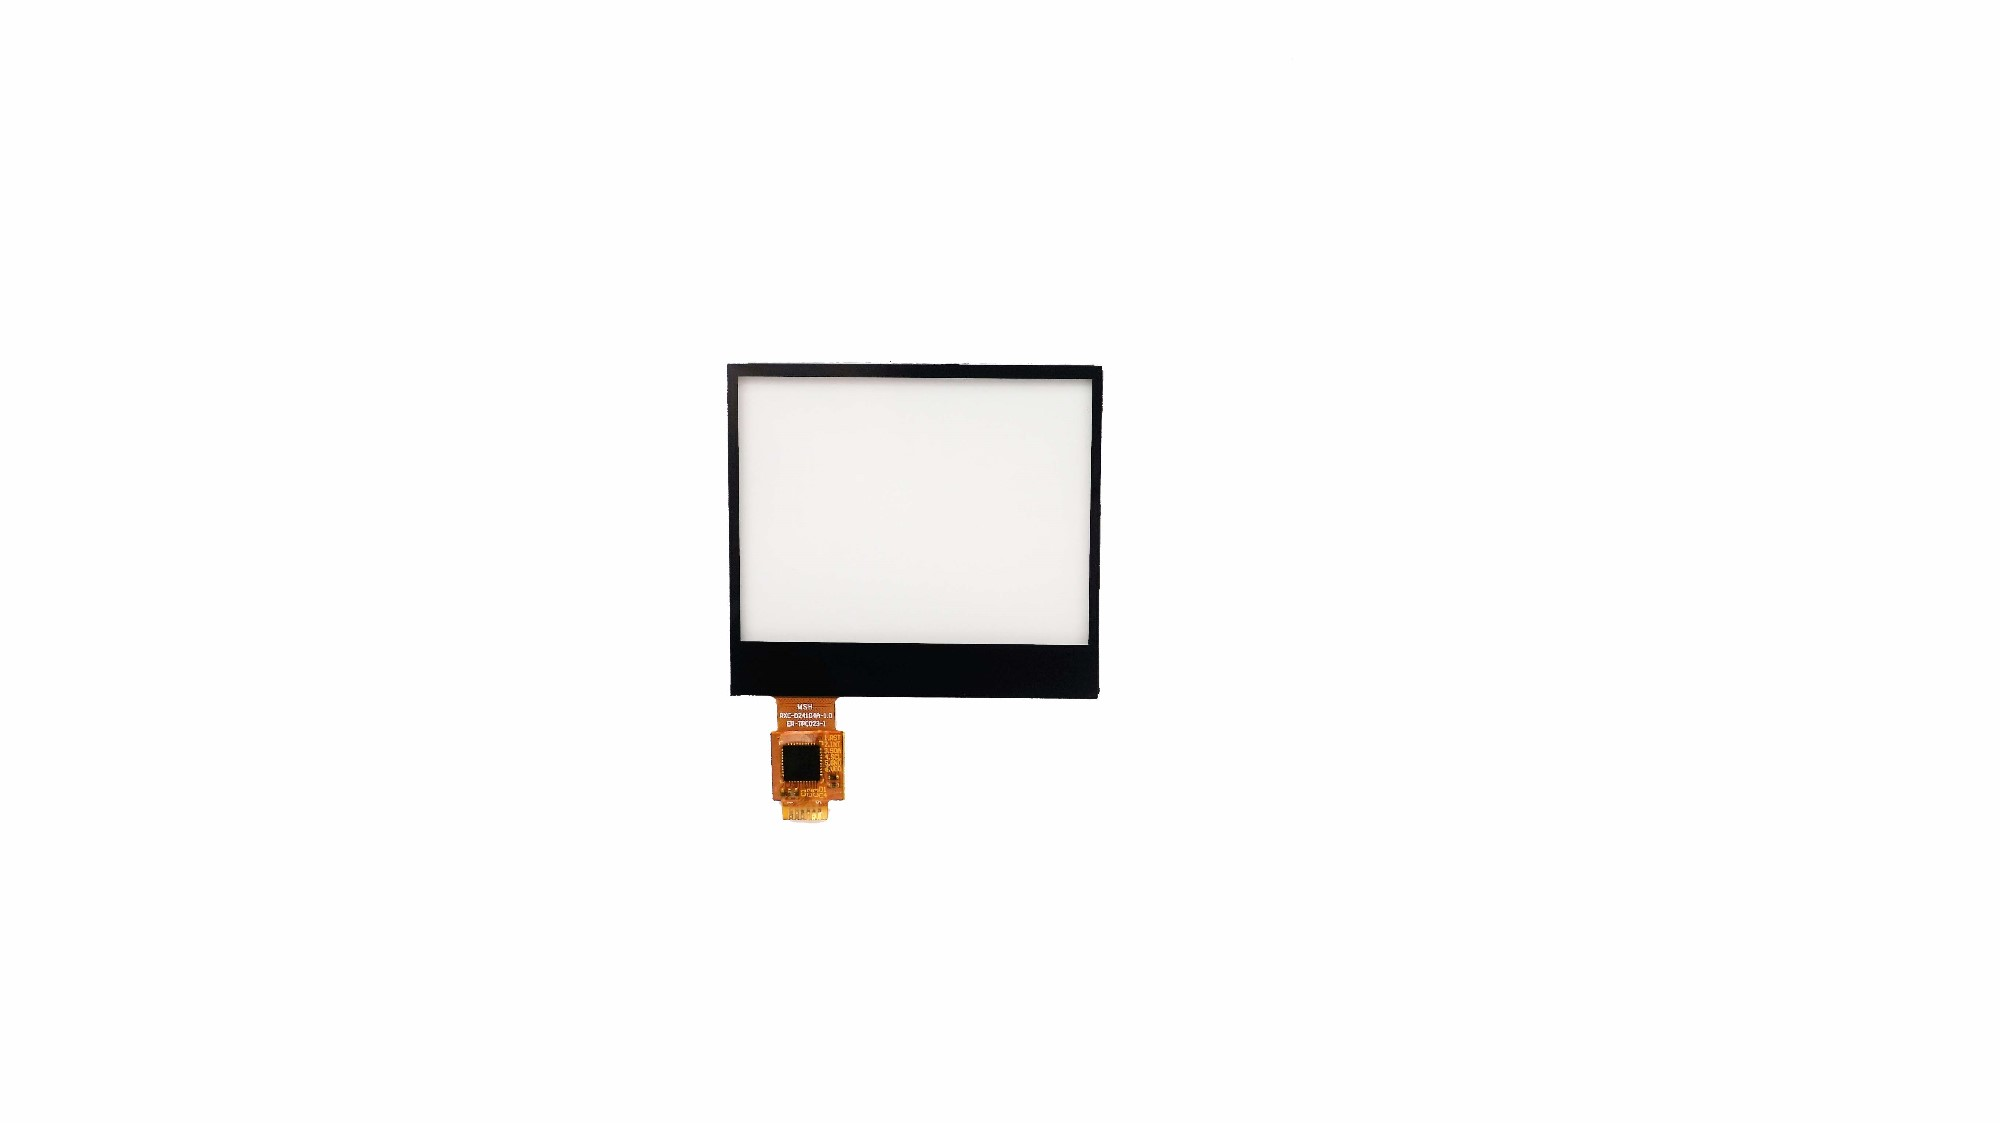 Digitizer Touch Screen 2.4 Inch Capacitive Touch Screen